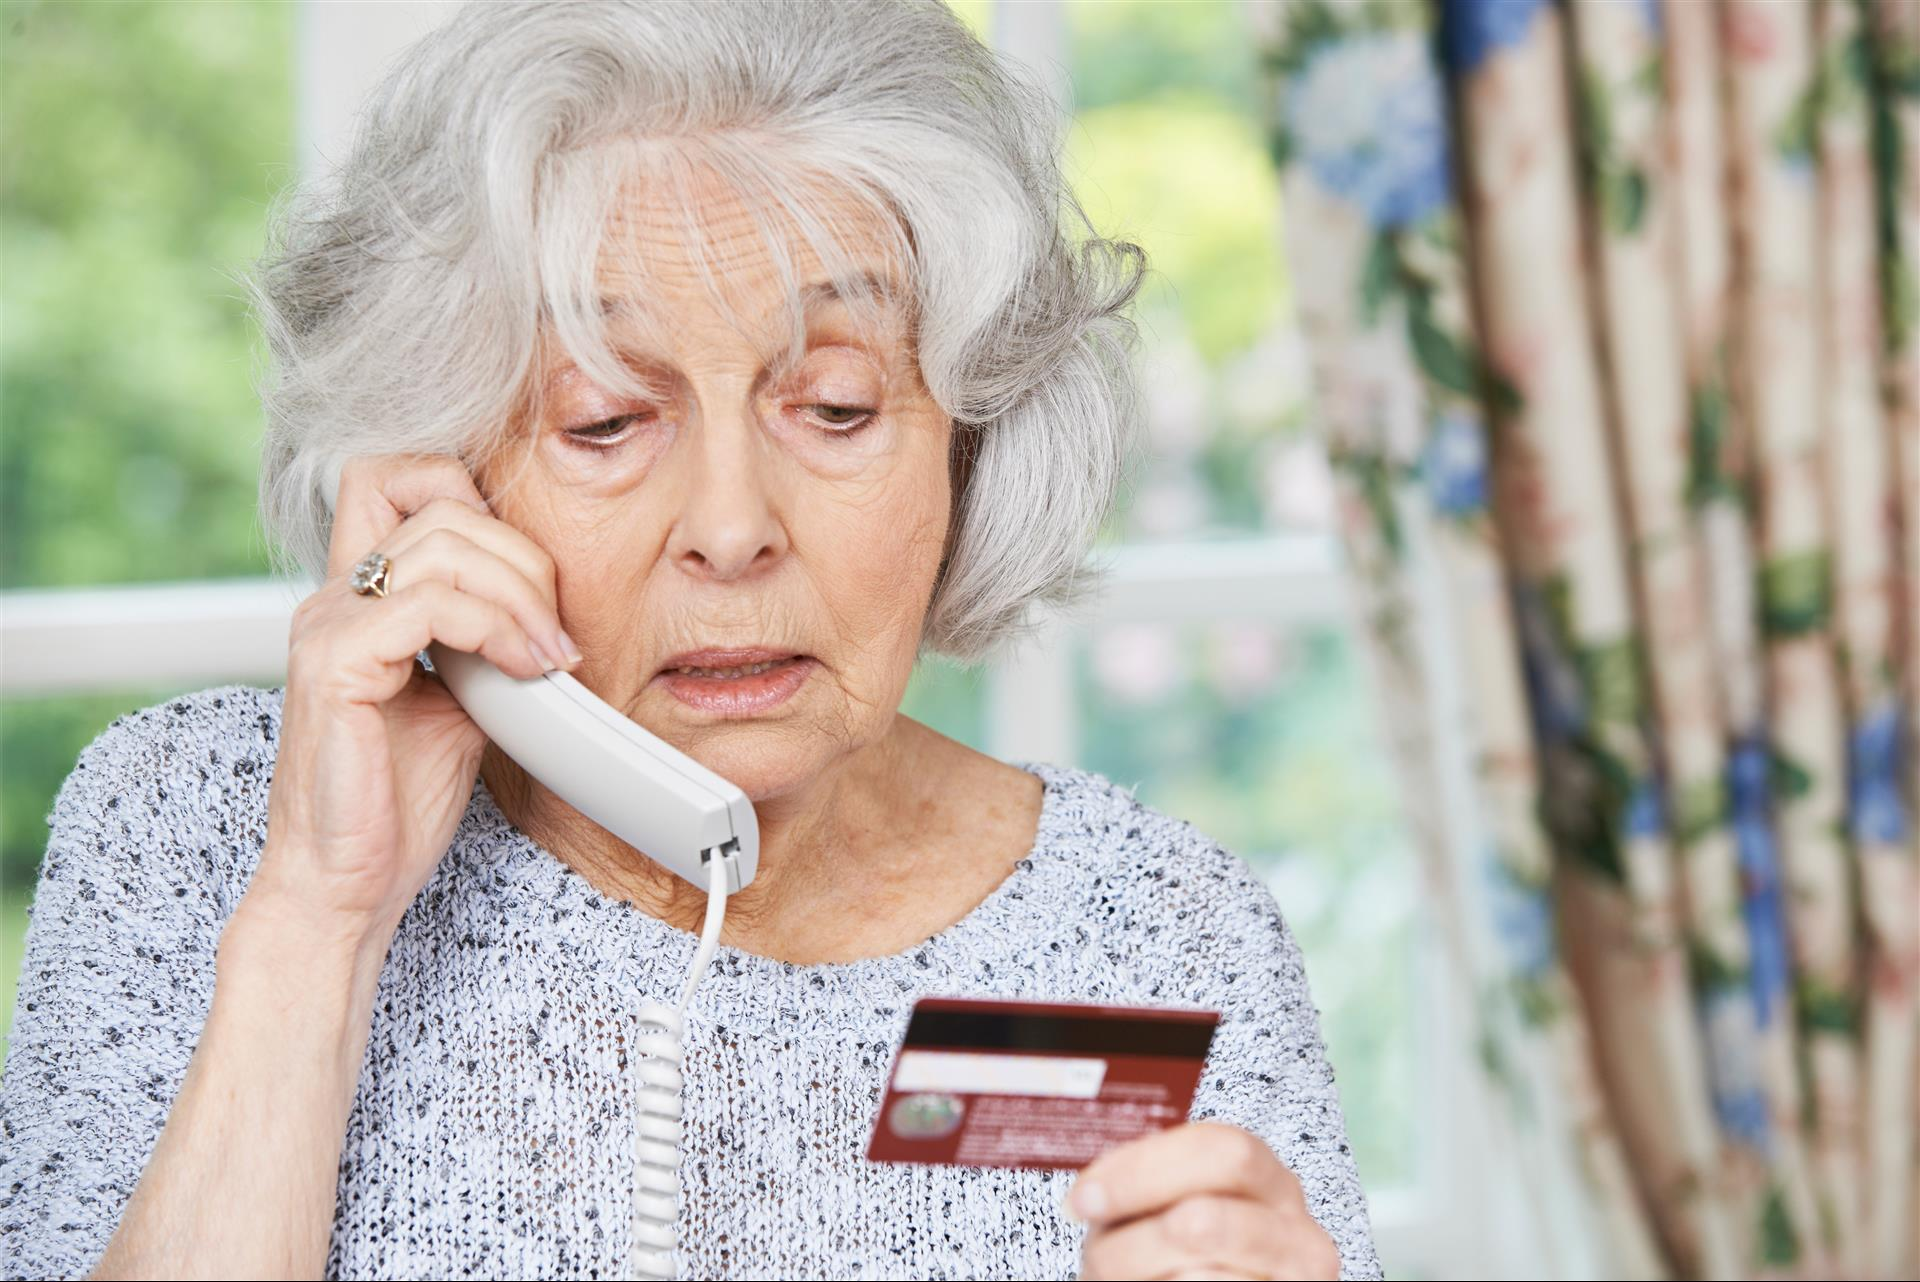 Seniors and Credit: What You Need to Know to Protect